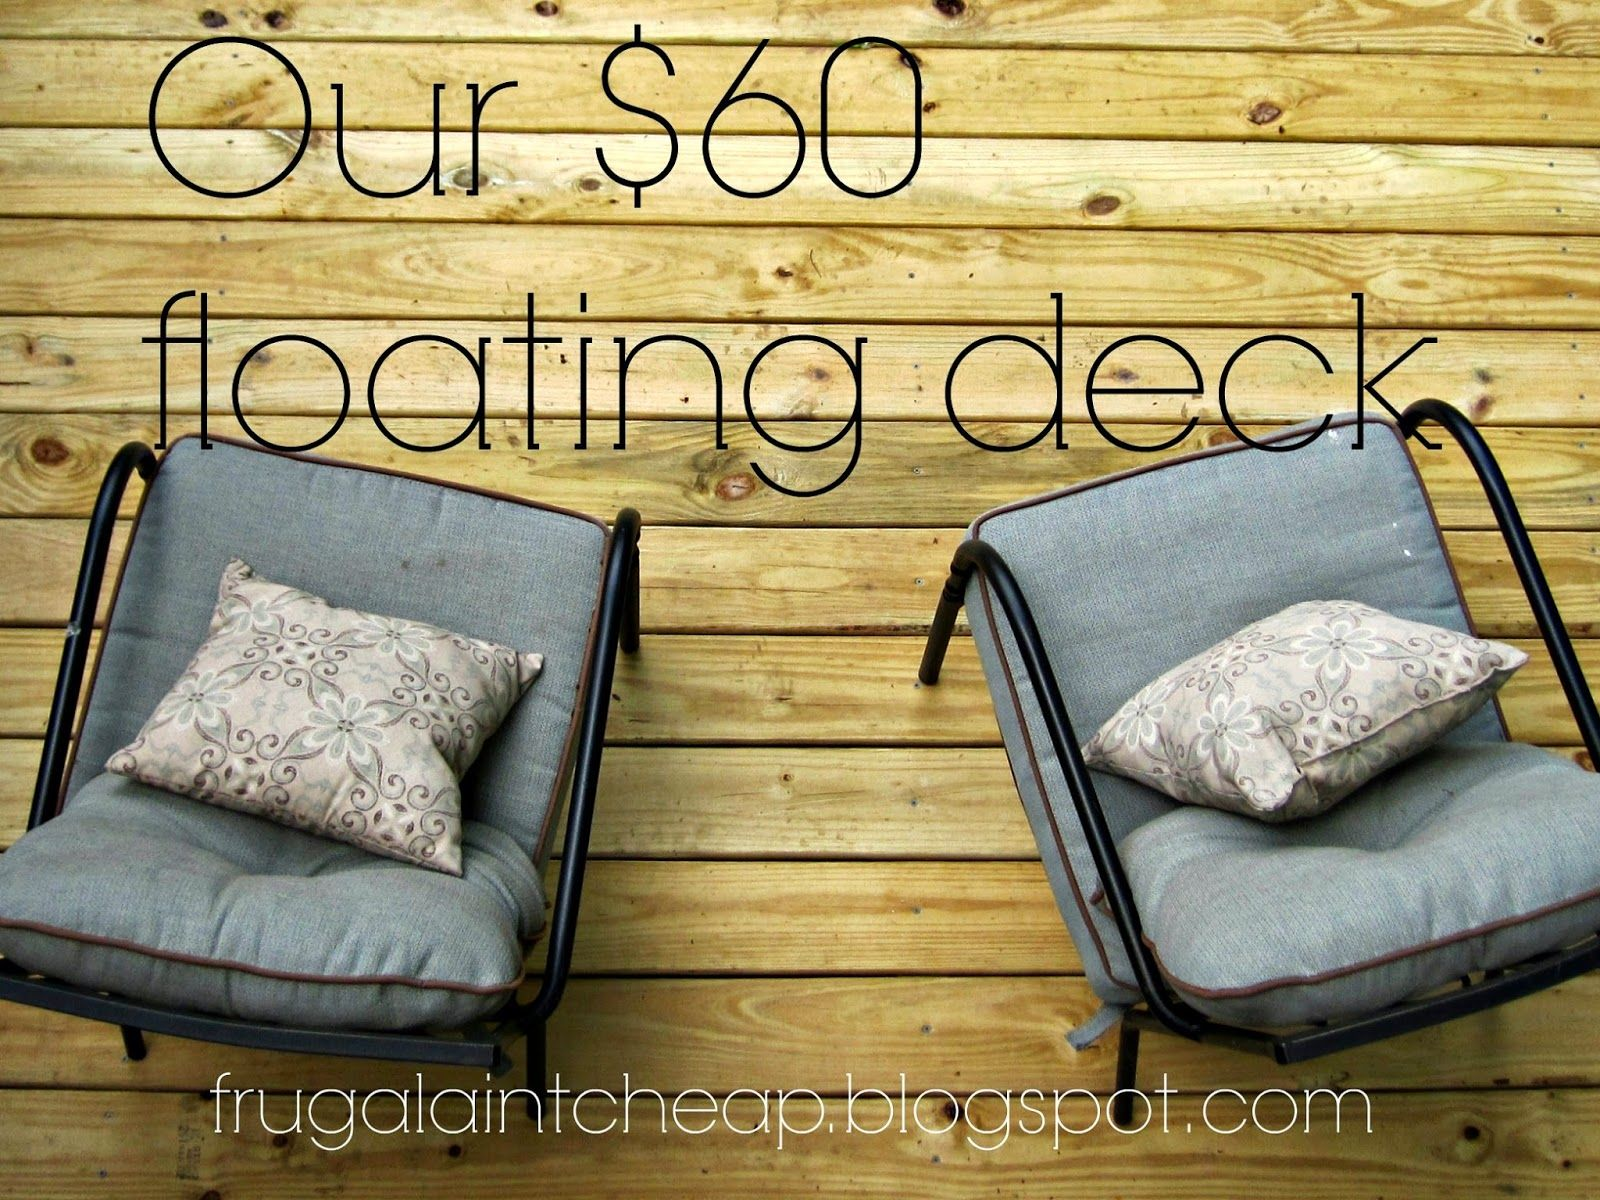 Frugal Ainu0027t Cheap: DIY Floating Deck